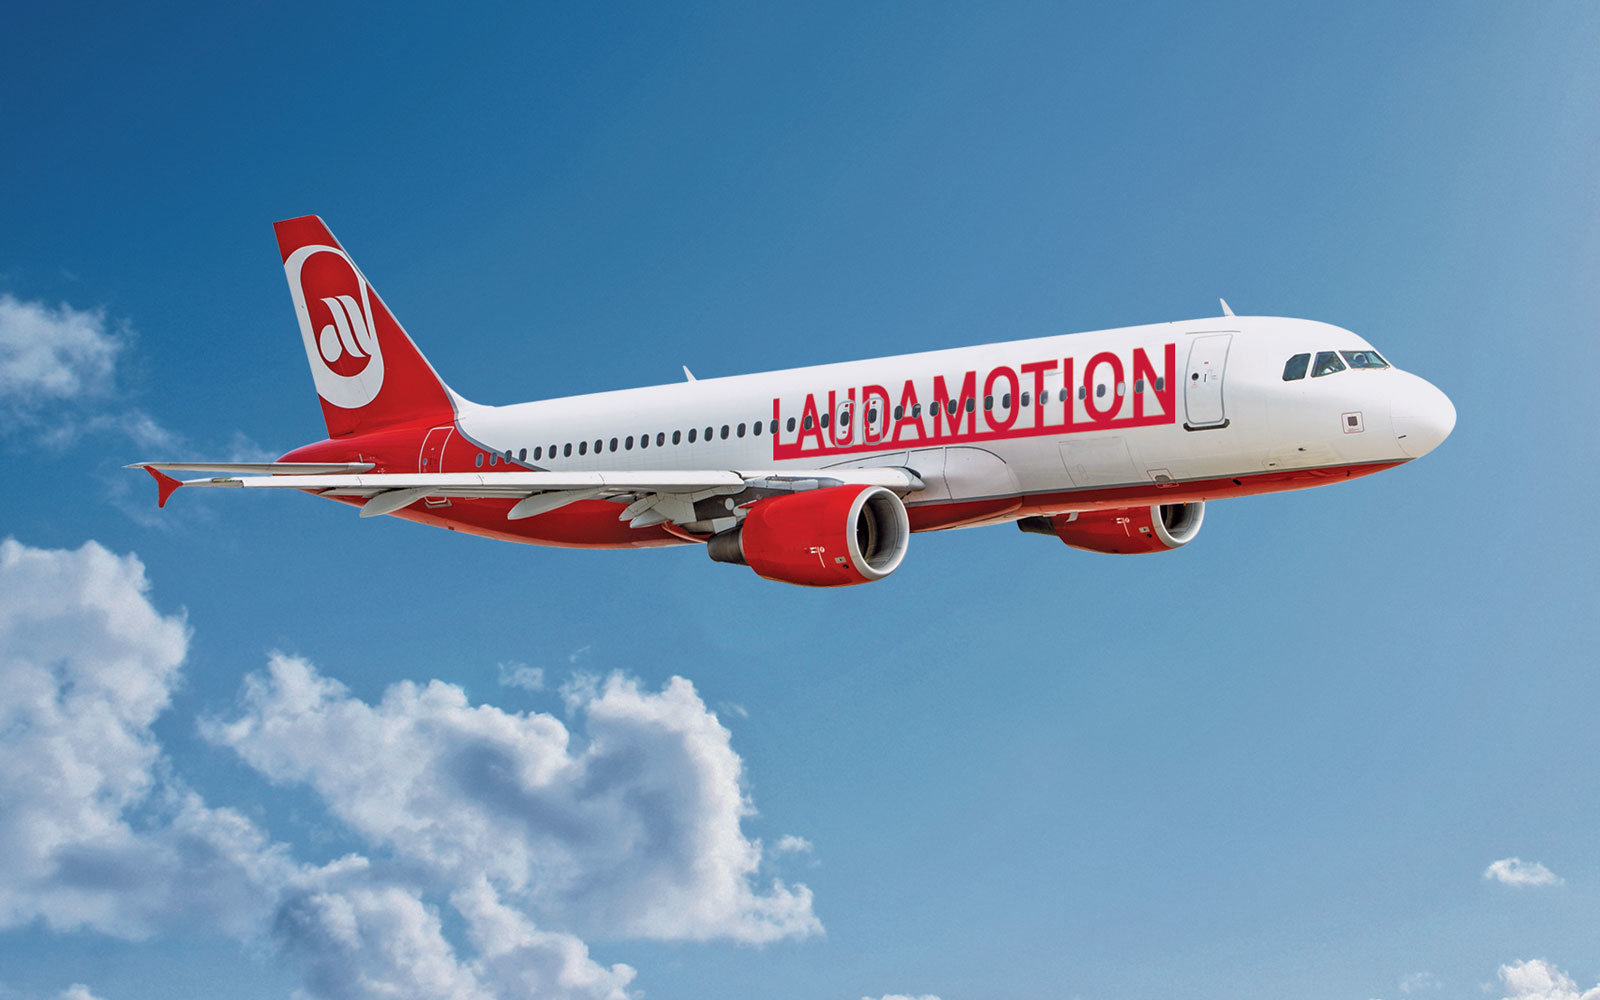 Ryanair-LaudaMotion Airline in new Partnership